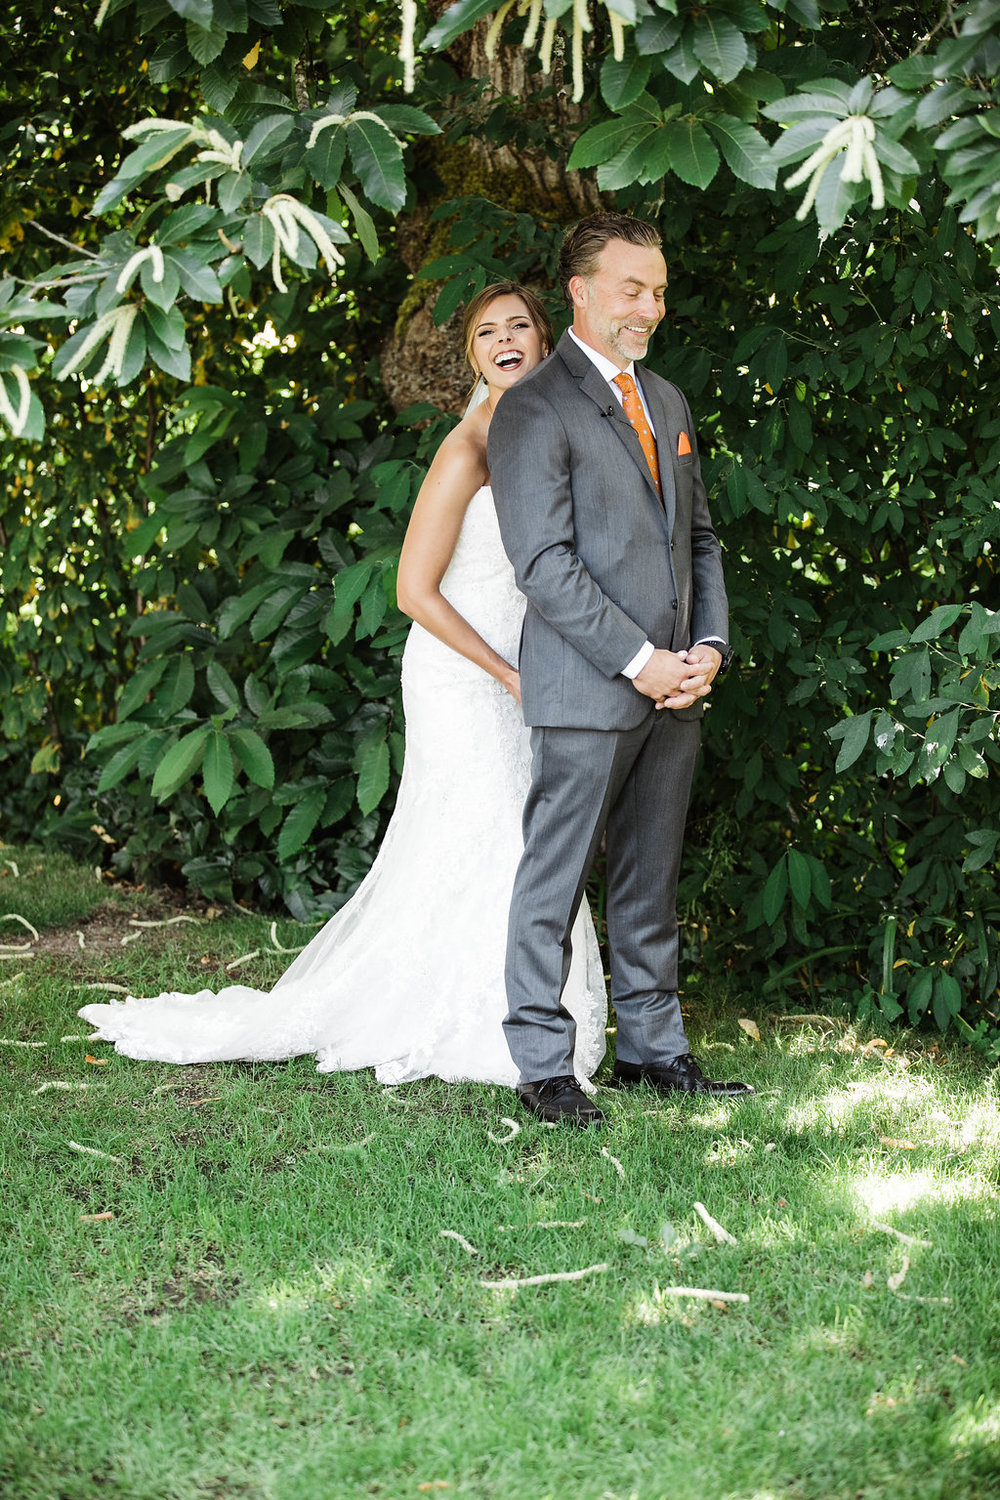 Erin+Tyson_The_Kelley_Farm_Wedding_by_Adina_Preston_Weddings_19.JPG